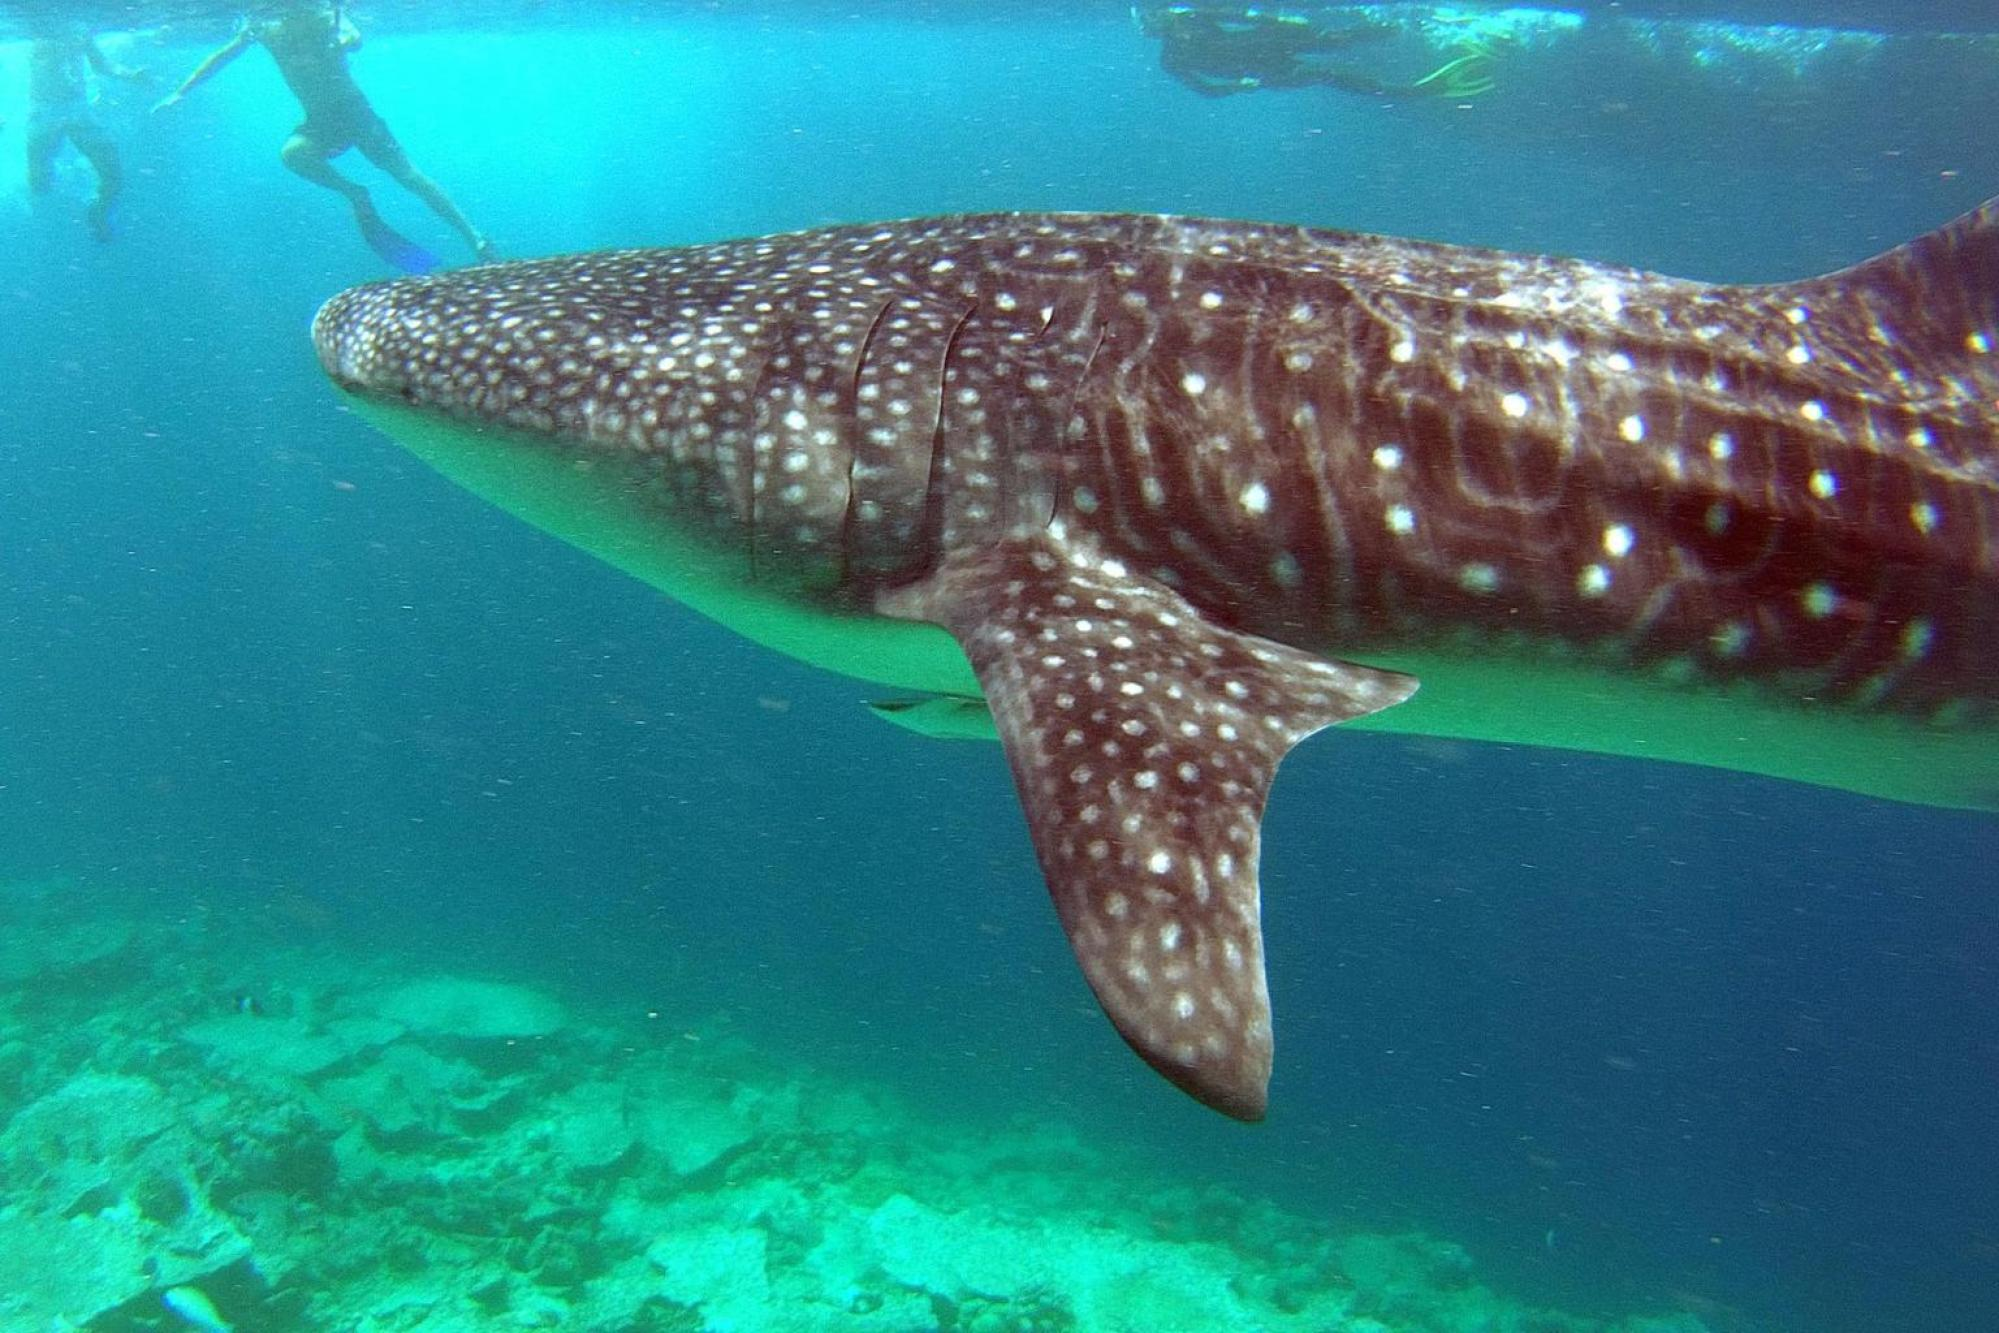 Whale sharks near LUX* Maldives - Photo provided by the LUX* team